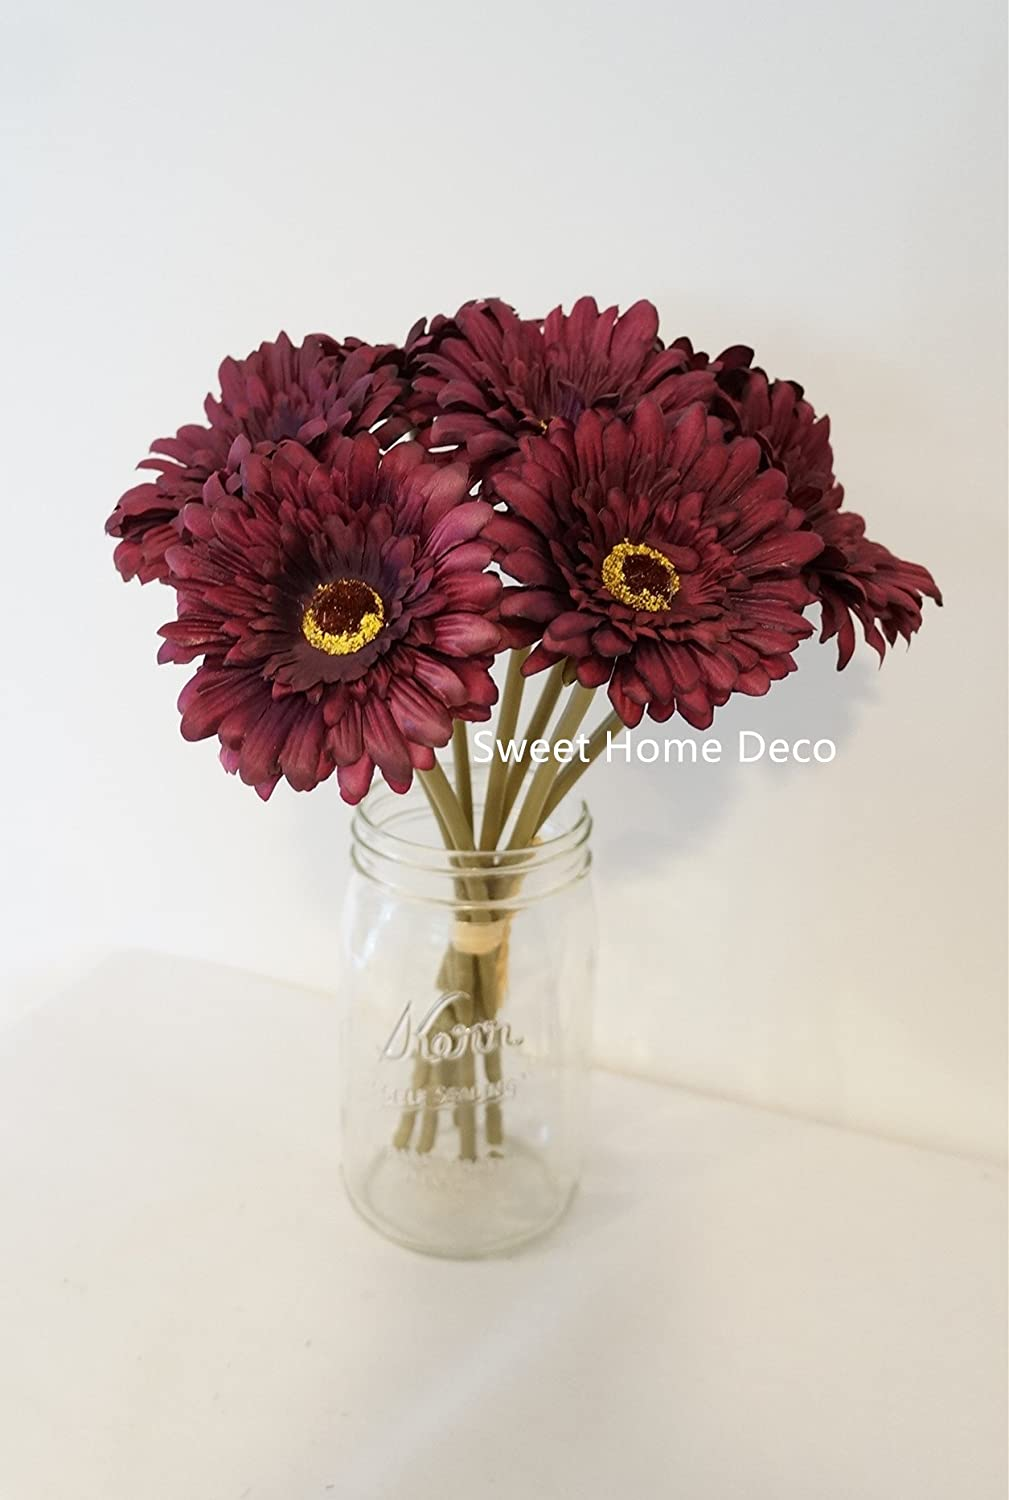 Amazon Sweet Home Deco 13 Silk Artificial Gerbera Daisy